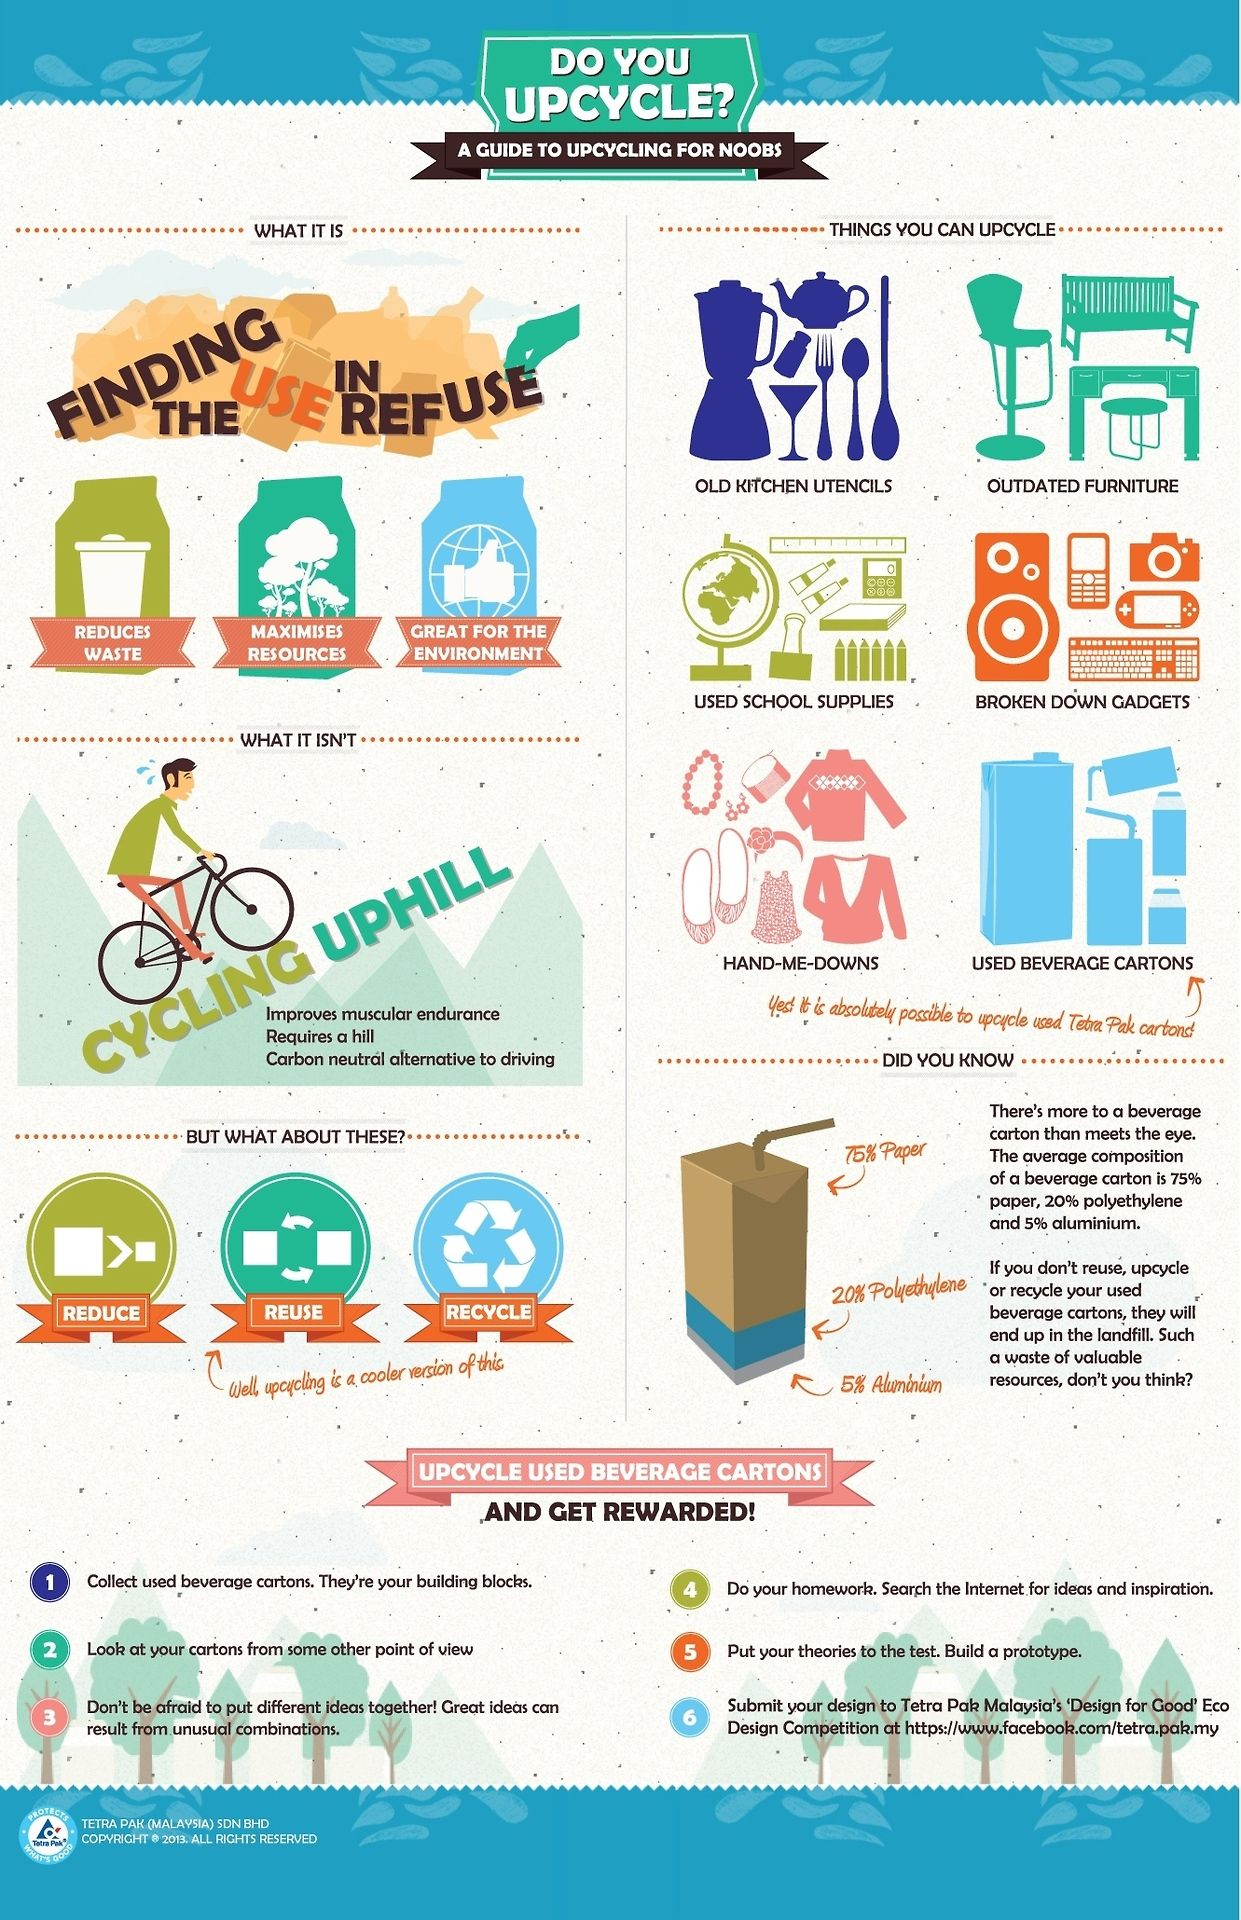 Inspirational Infographic Promoting Upcycling For Used Beverage Cartons Infograph Supports An Eco Design Competition Organised By Tetra Pak Malaysia